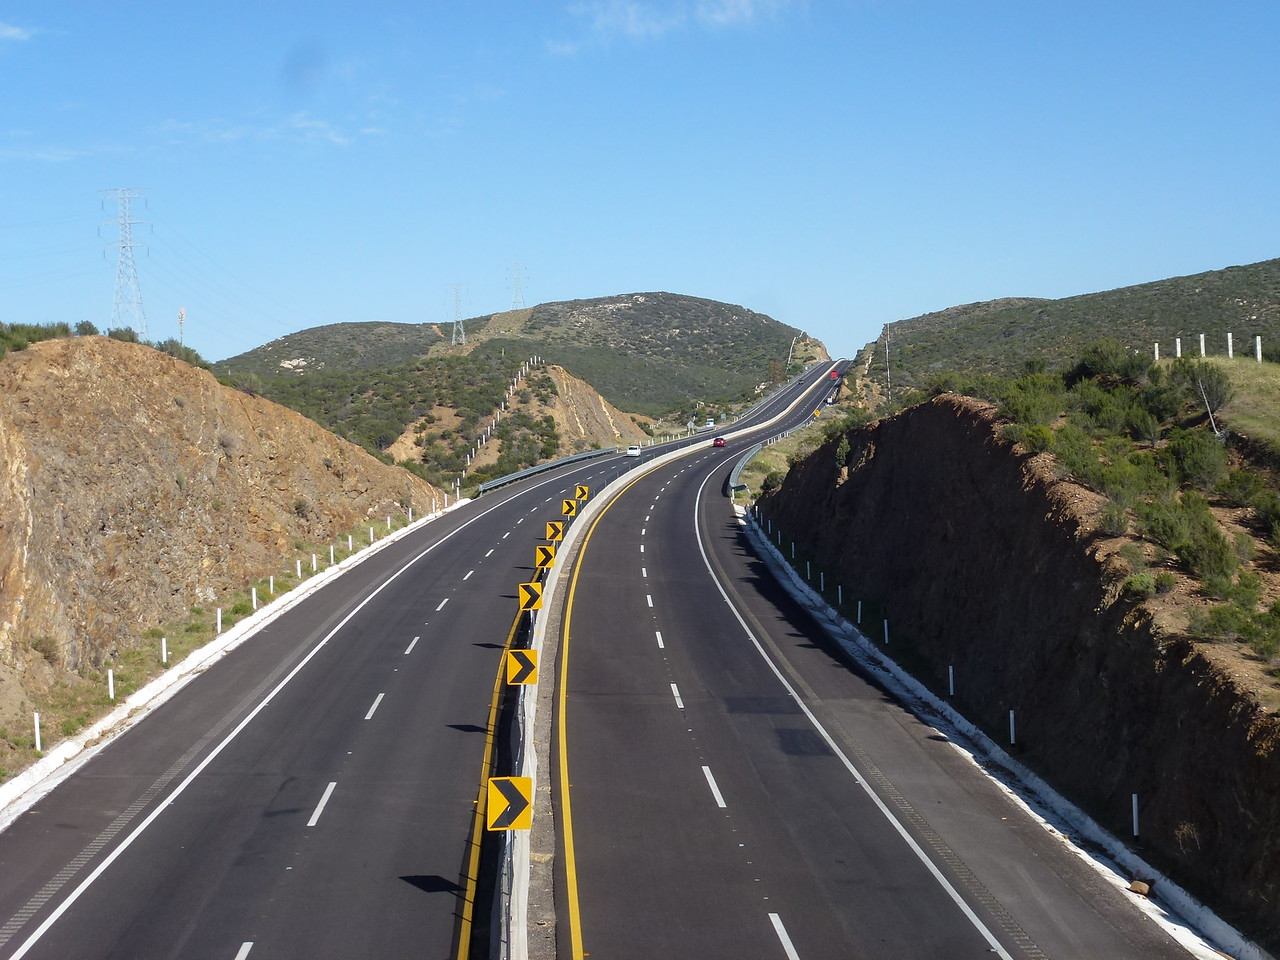 New 4 lane toll road (cuota ) that I had to get on later that day .<br /> <br /> Ten Pesos or so , every 20 miles - less than a US dollar